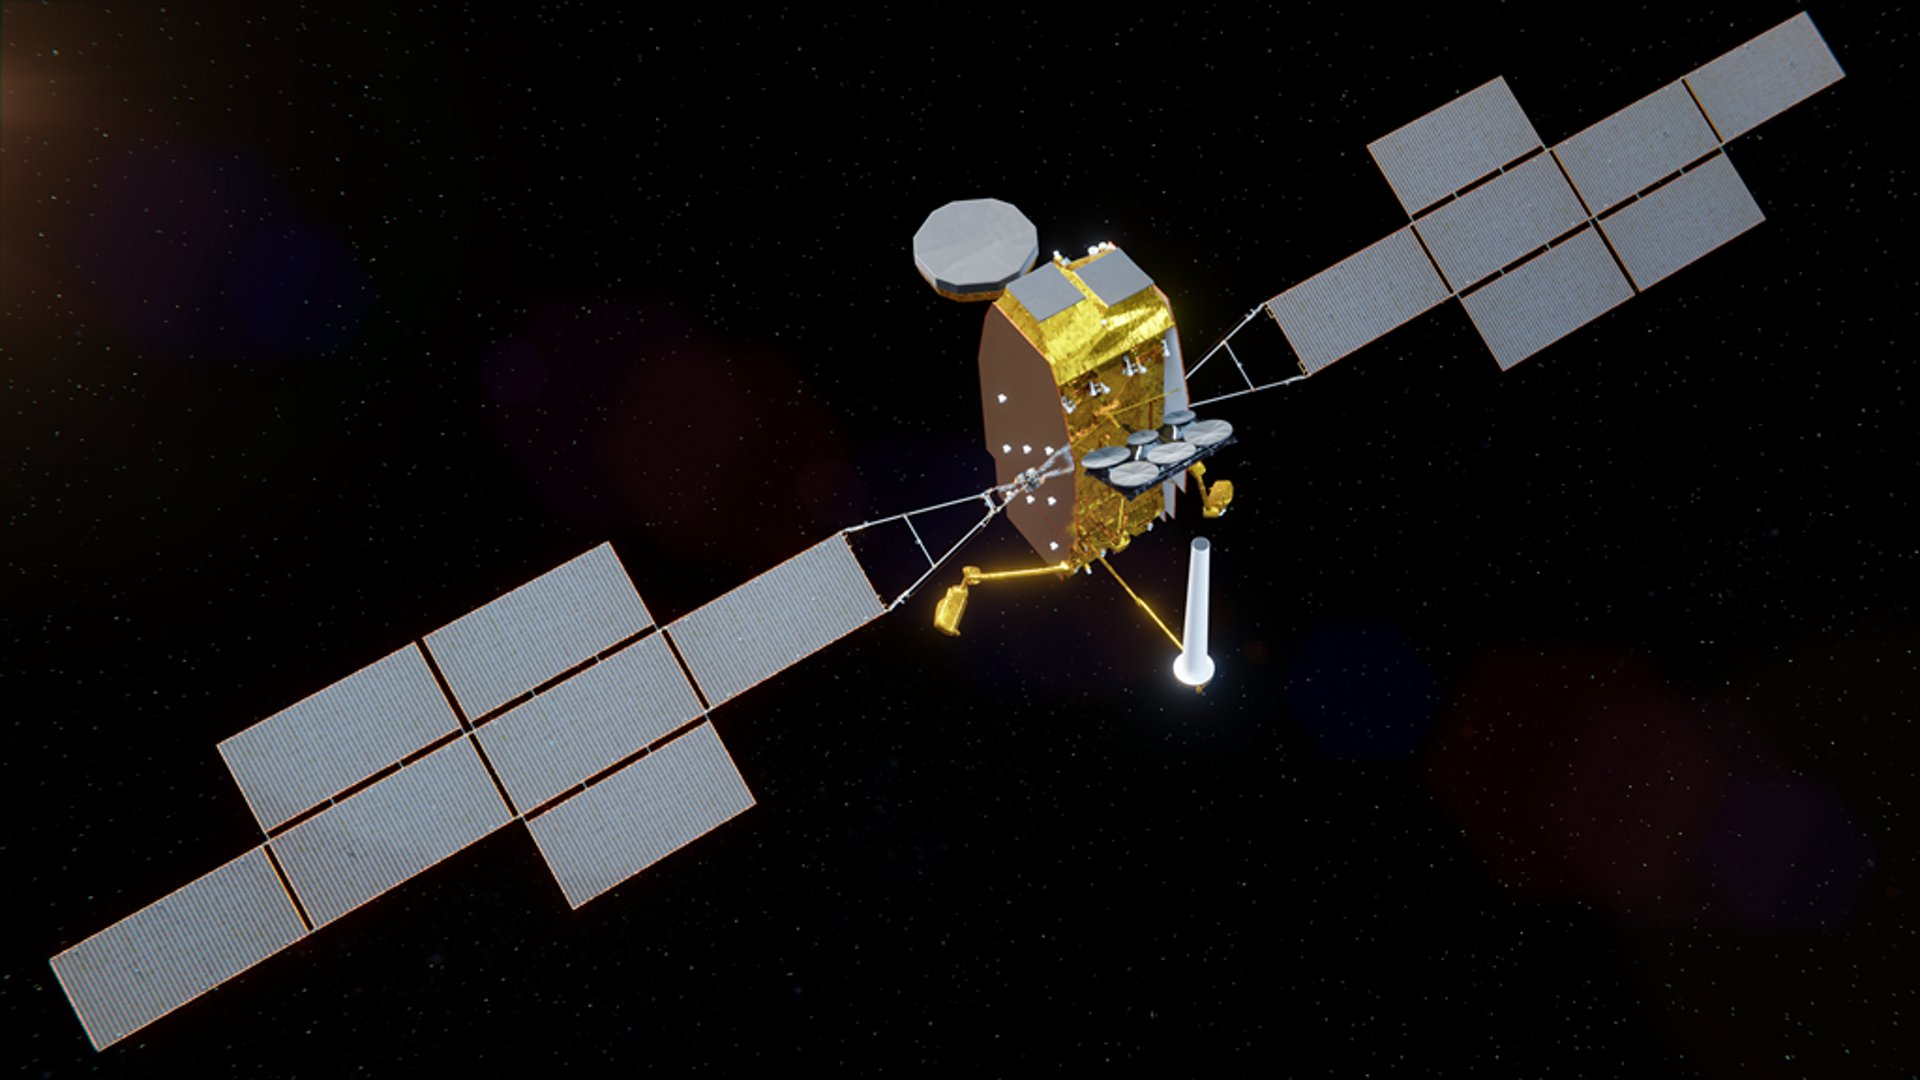 Hisdesat appoints Airbus and Thales Alenia Space to build two SpainSAT NG satellites